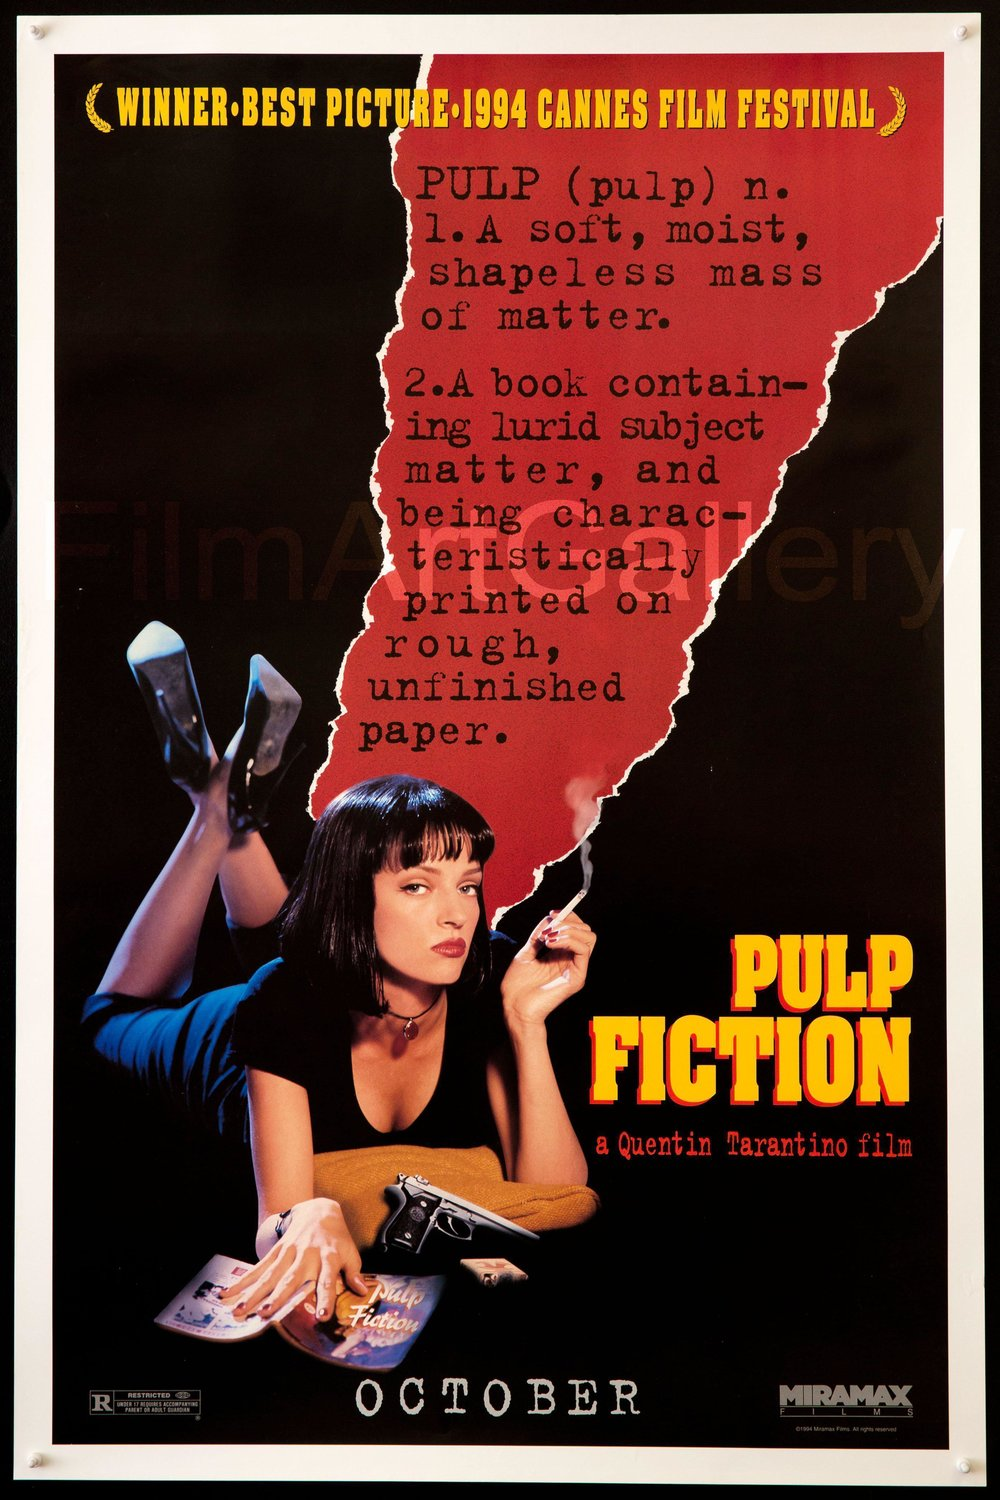 Pulp Fiction (1994) - Best guess: John Travolta creates one of the best GIFs of all time.